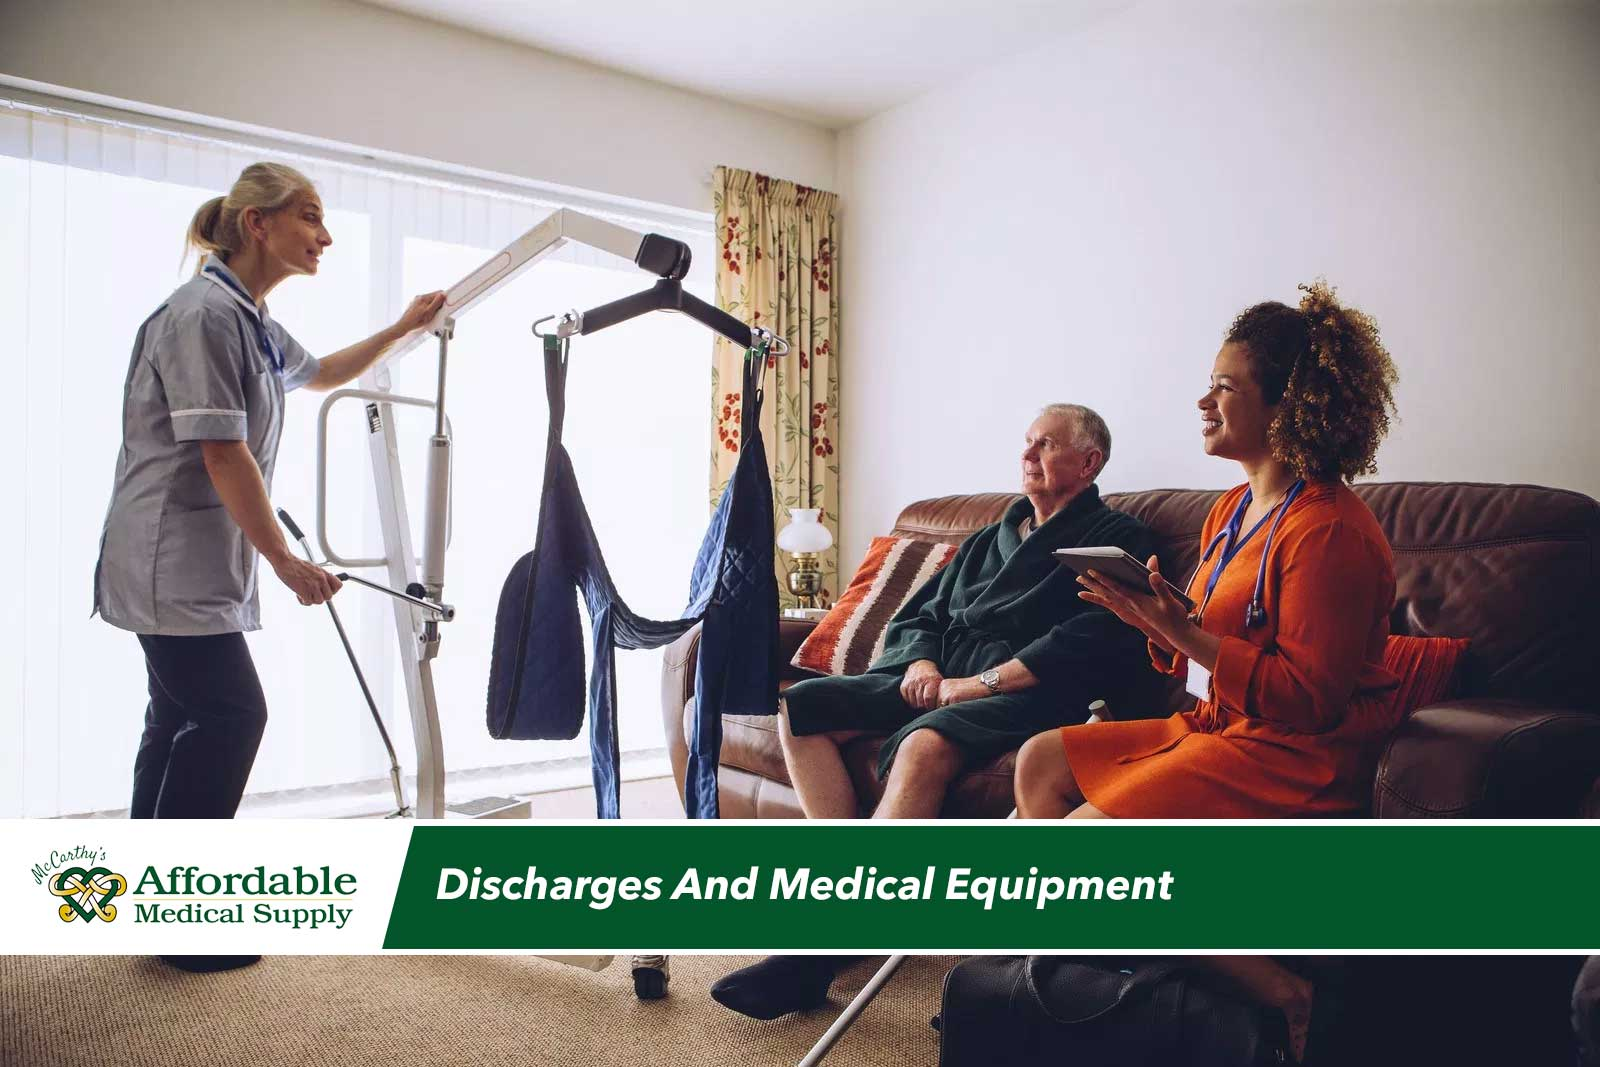 Discharges And Medical Equipment